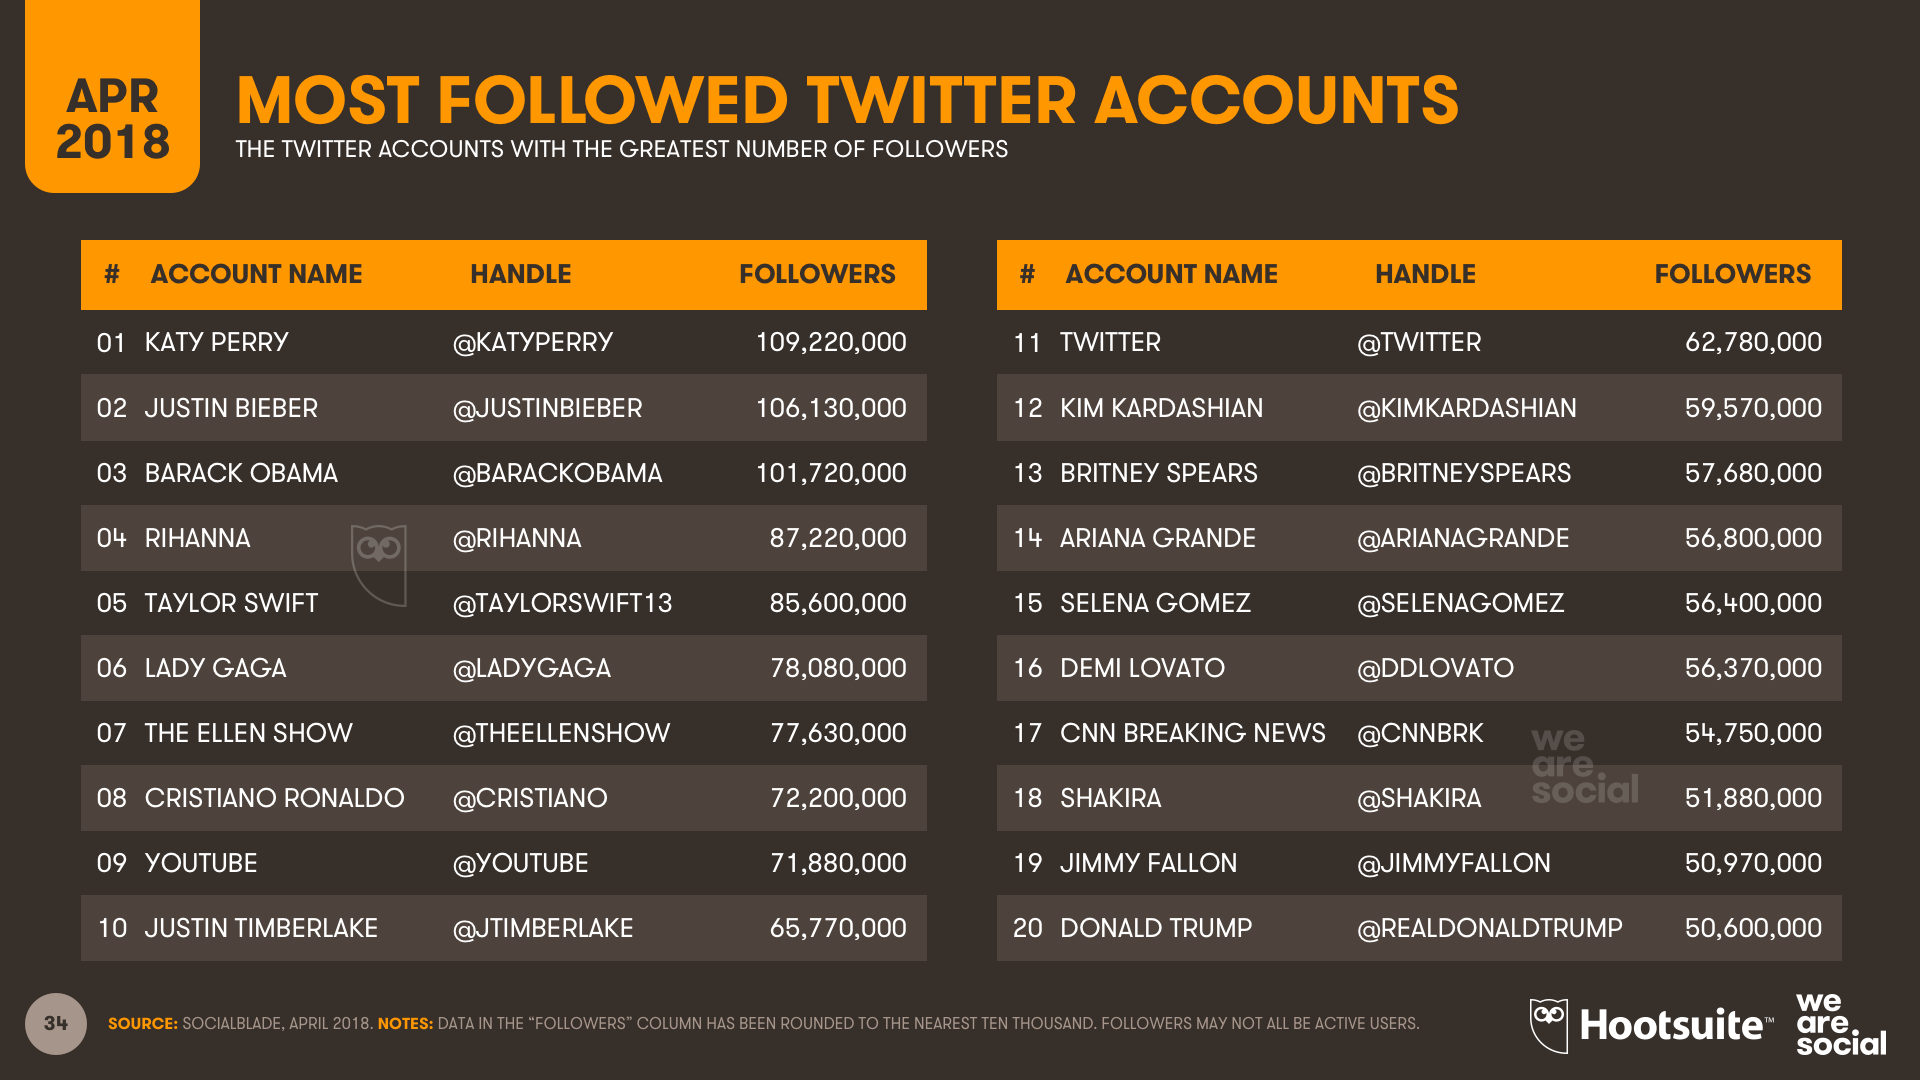 Twitter Most Followed - Q1 2018